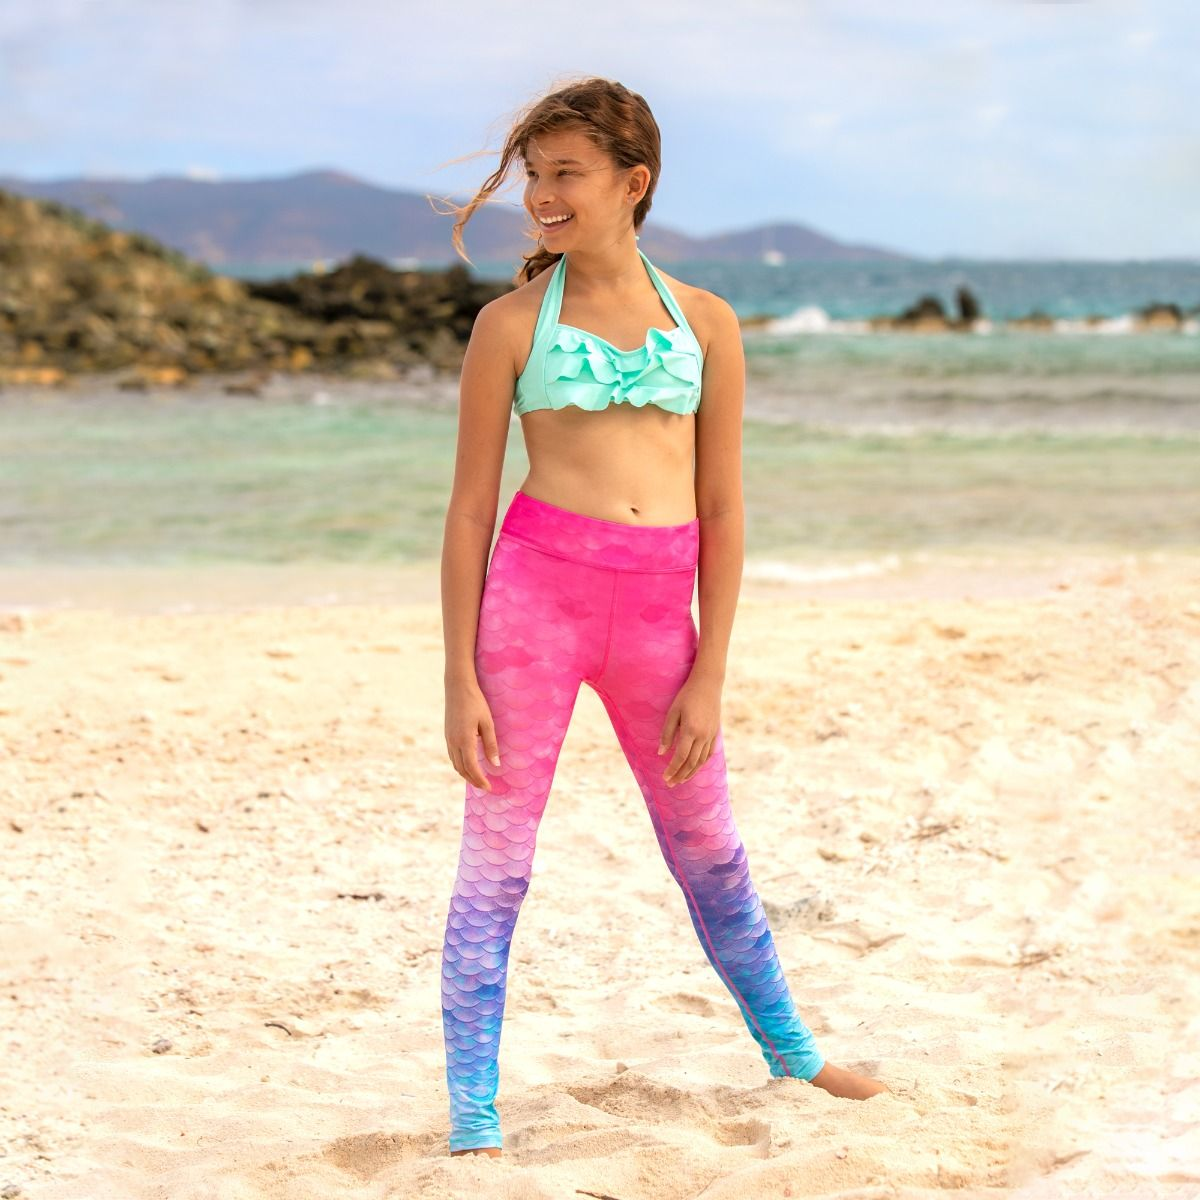 d298f0cdfc2 ... a kid wears pink to blue ombre mermaid scale leggings with a mint green  matching top